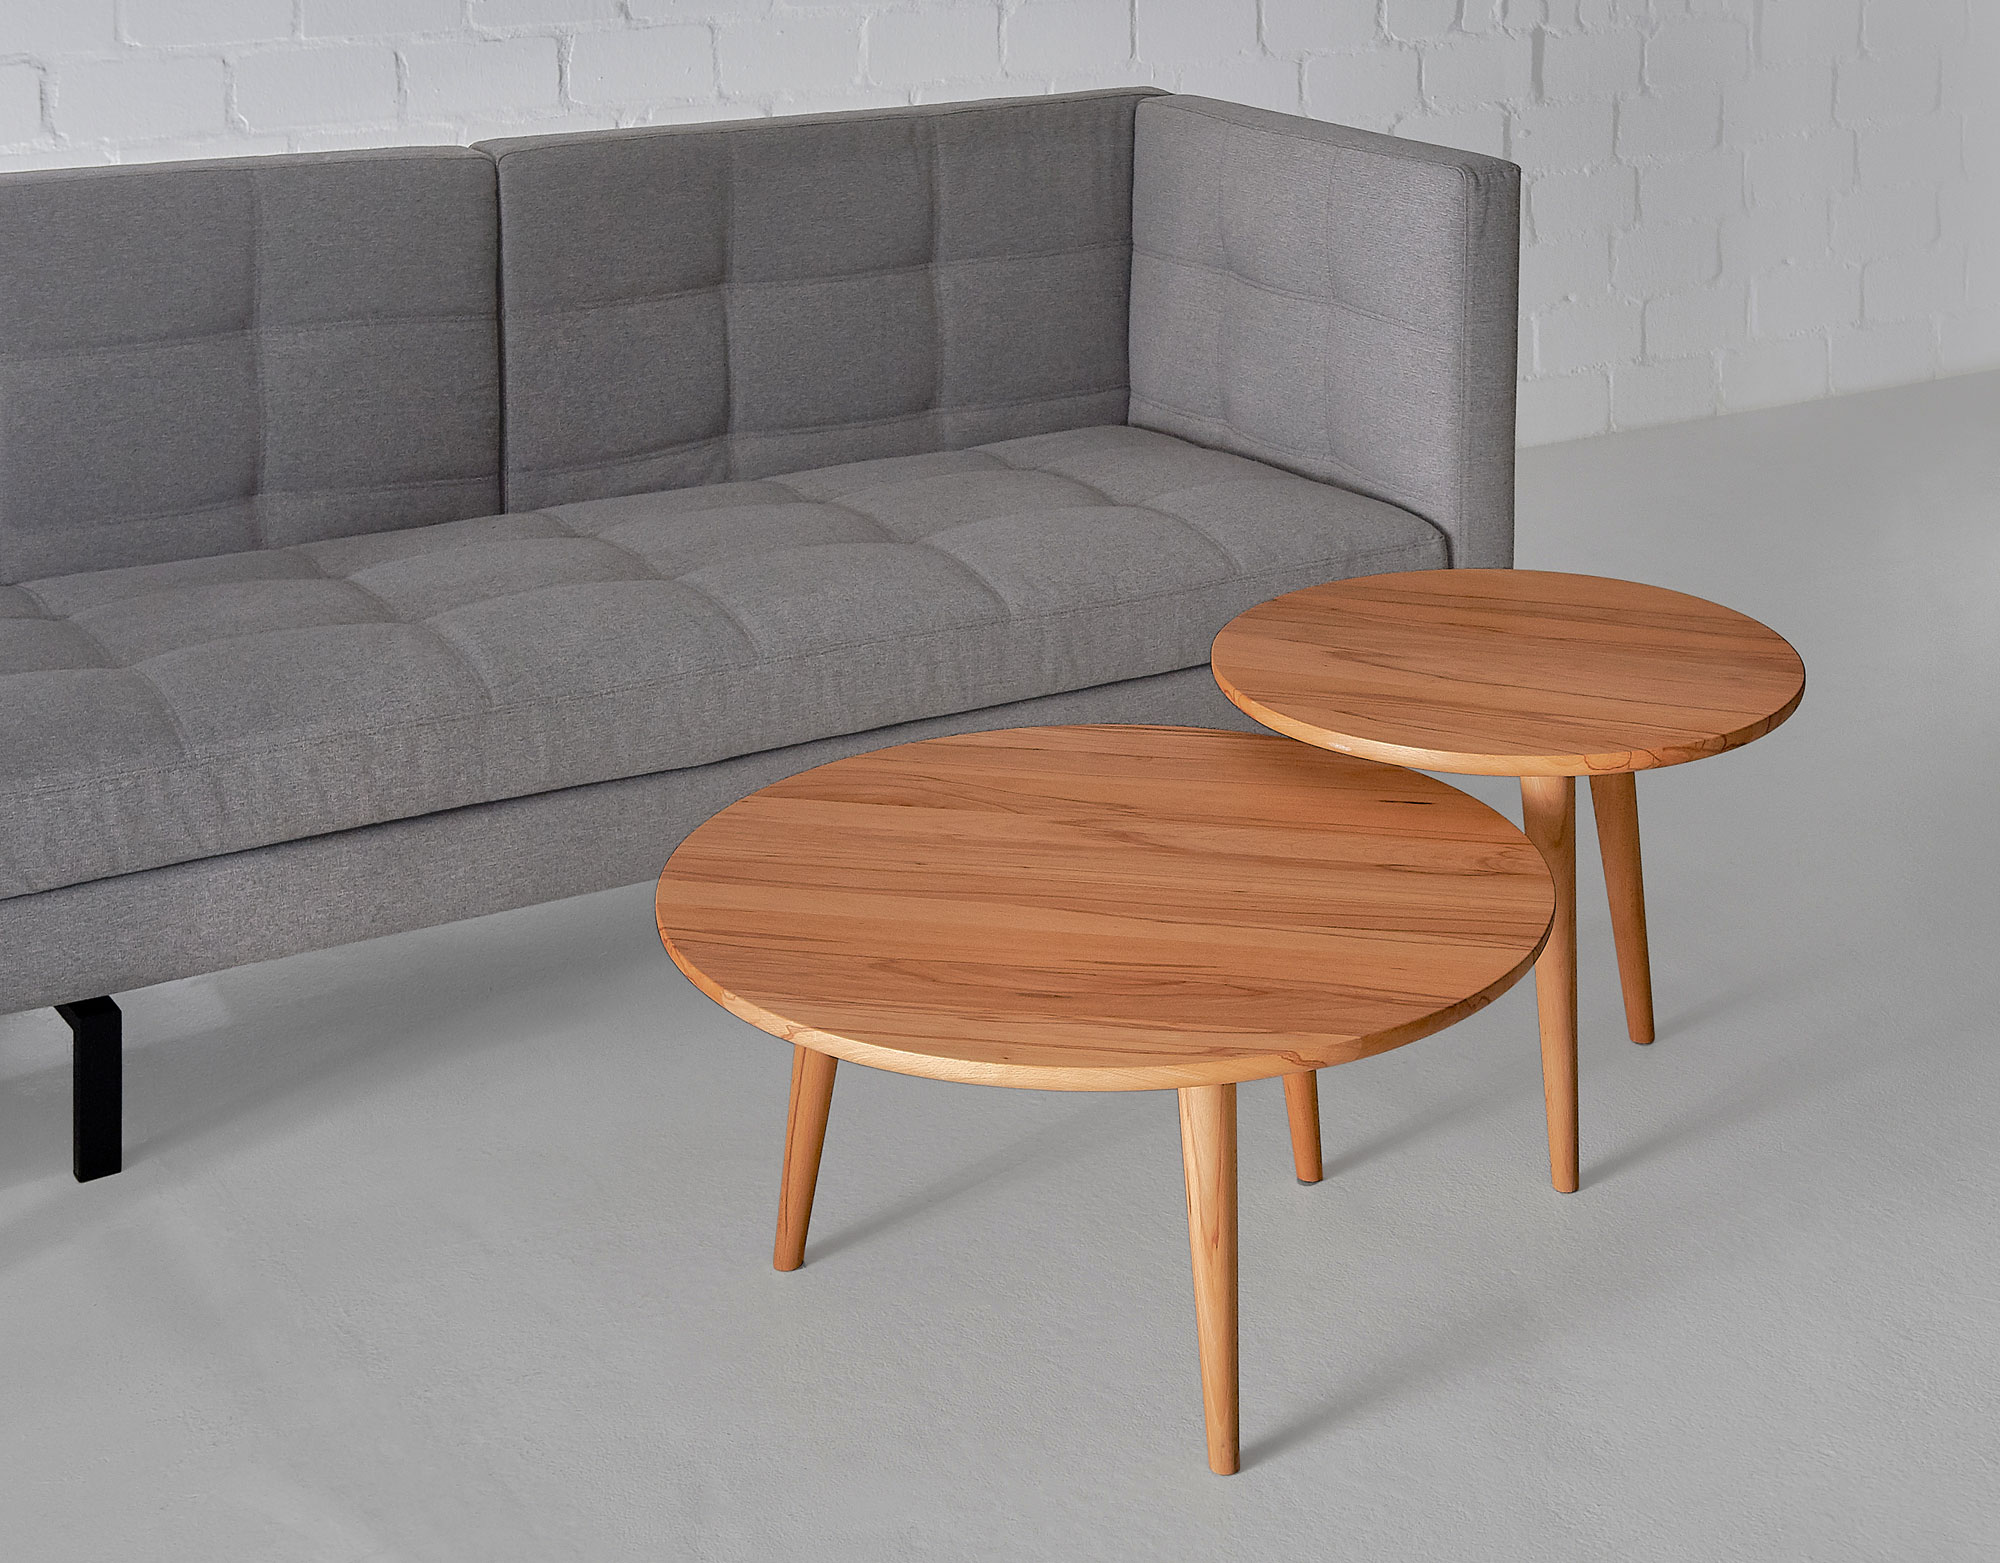 Round Coffee Table AMBIO ROUND Edited custom made in solid wood by vitamin design